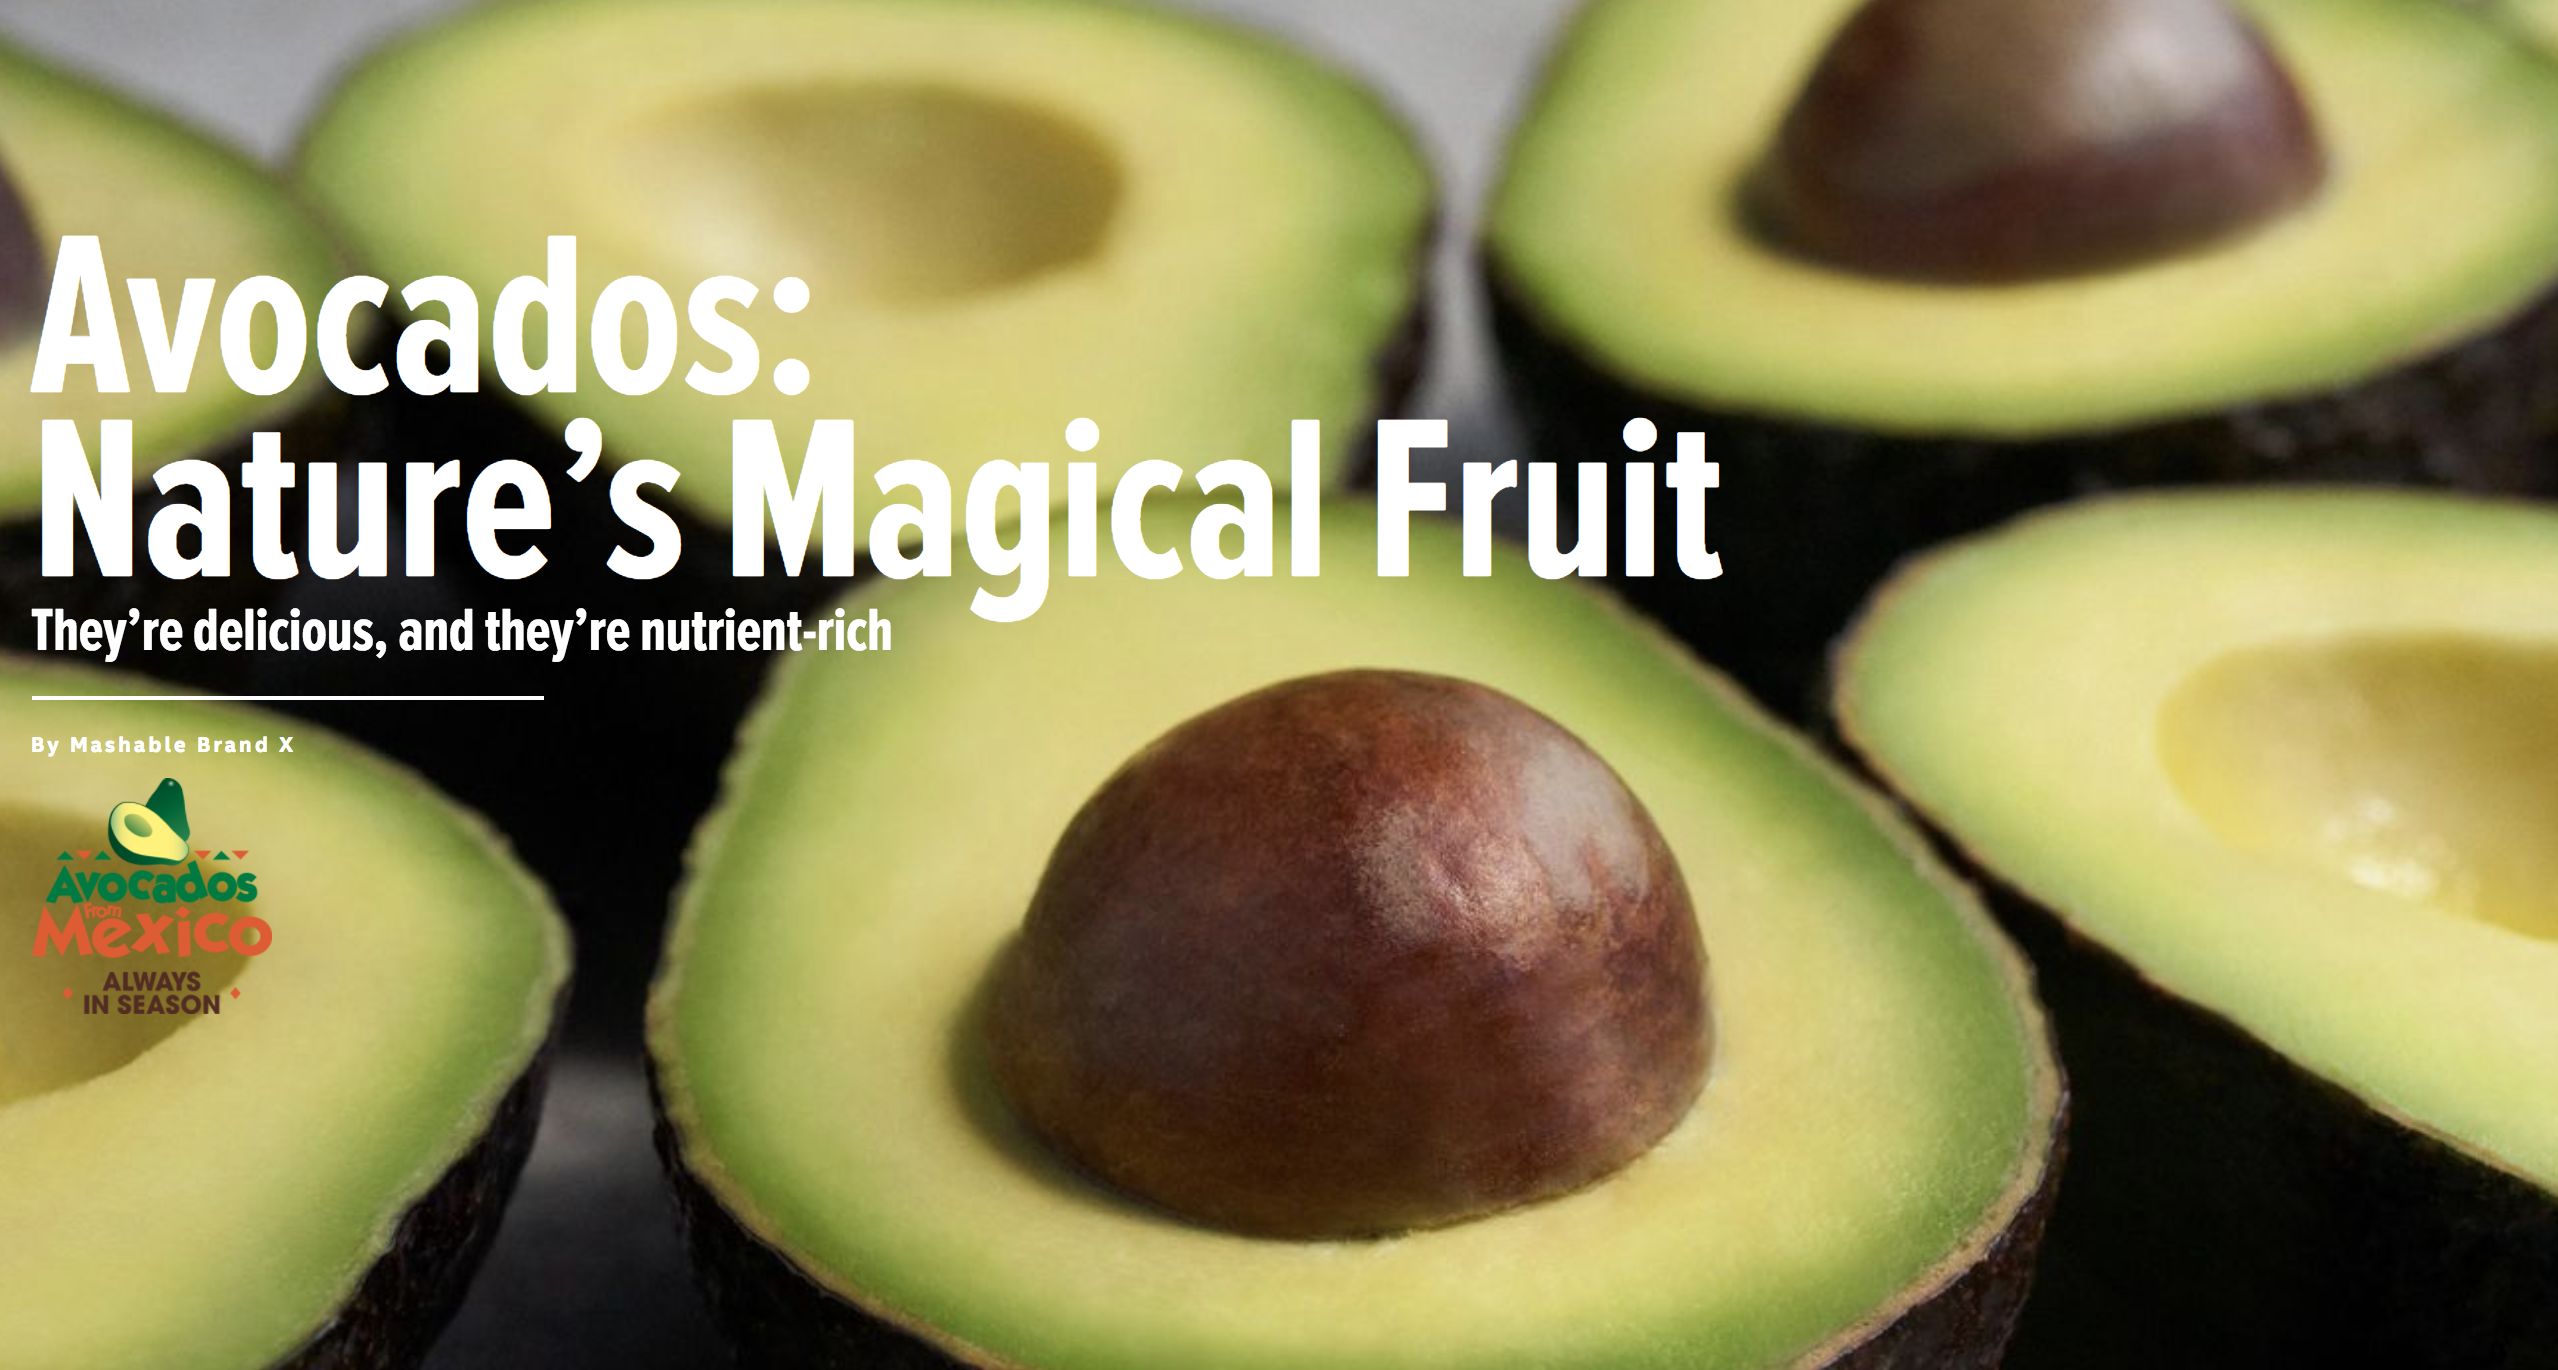 Avocados from Mexico x Mashable